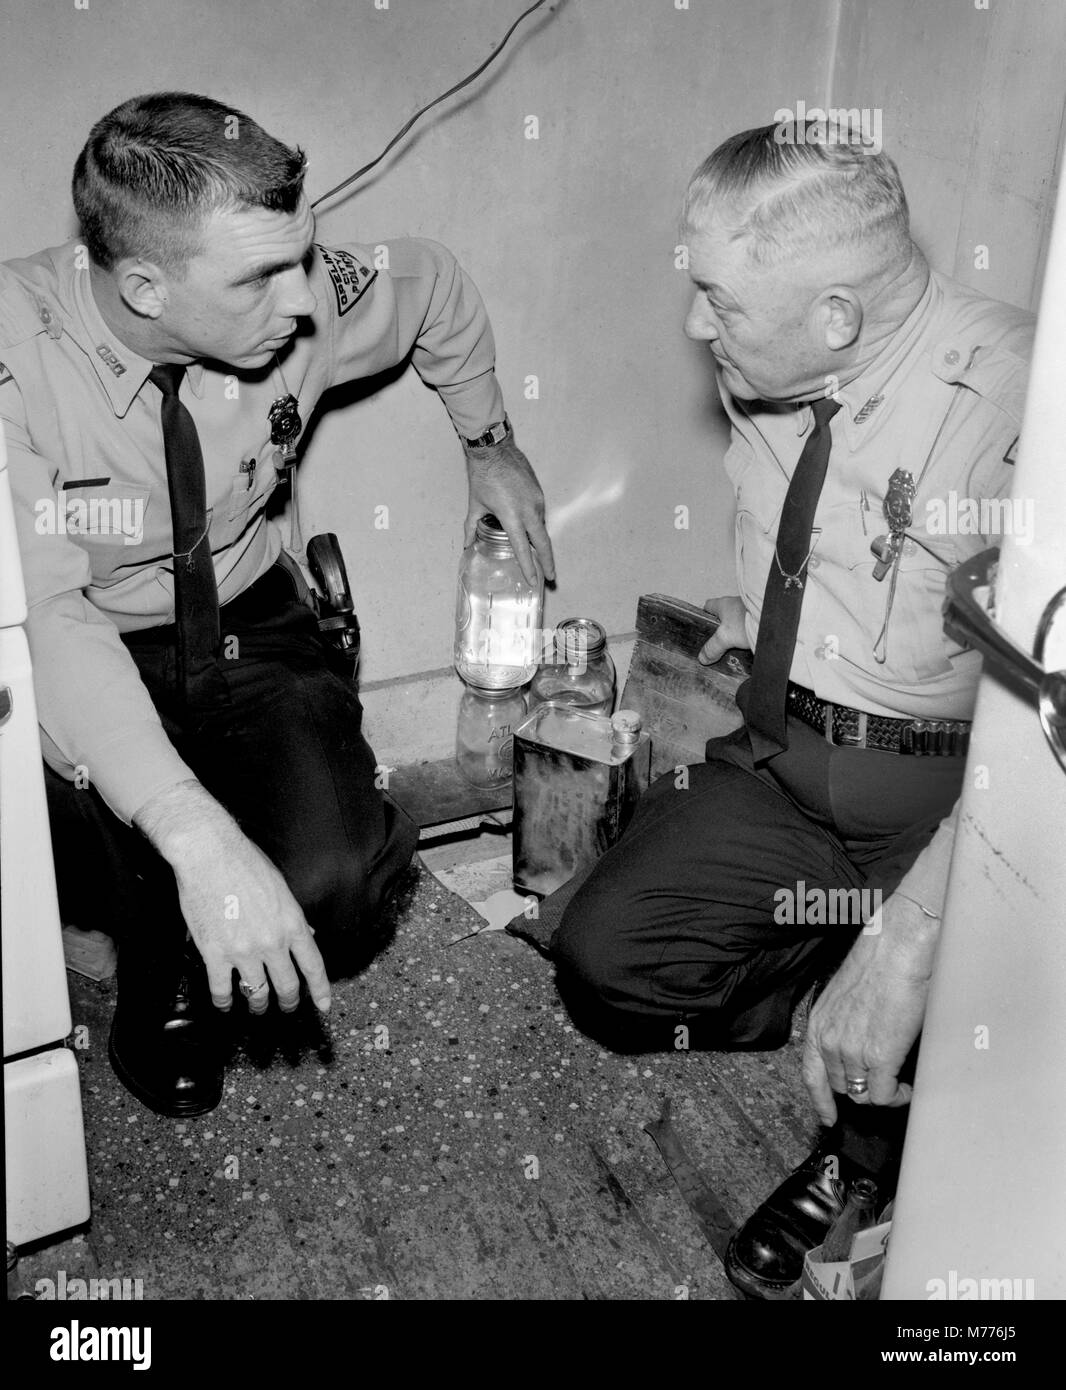 Police in the US state of Georgia examine illegal moonshine hidden beneath a trap door in a rural home, ca. 1962. - Stock Image